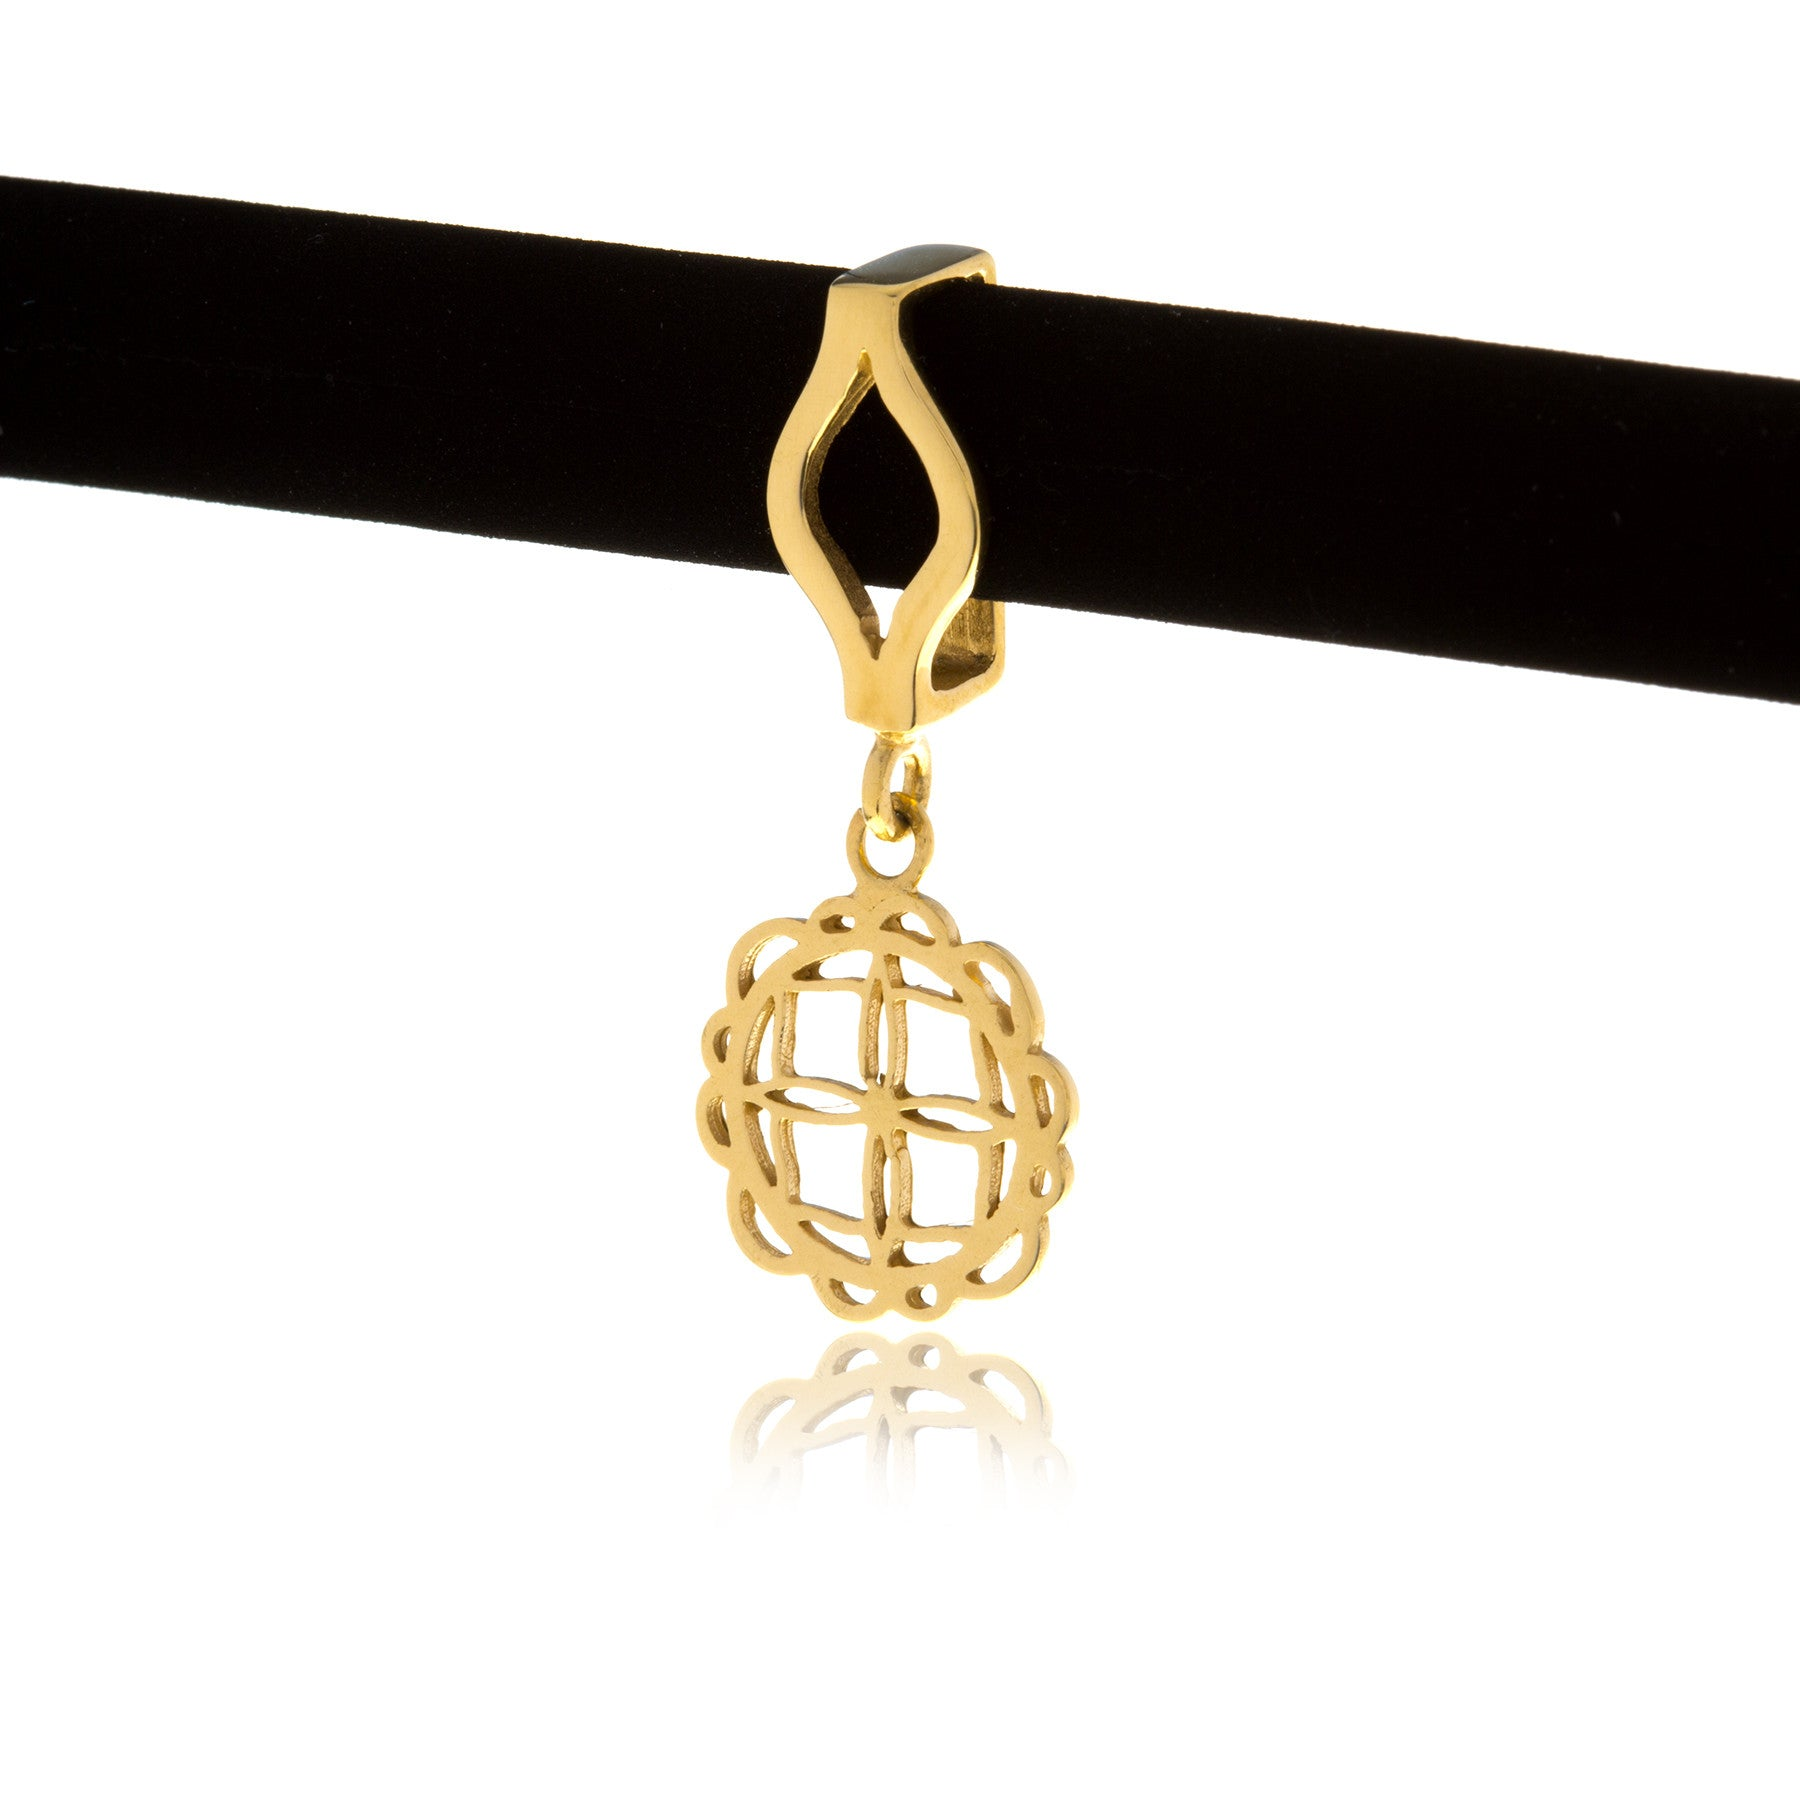 Signature Gold Flower Charm with Choker